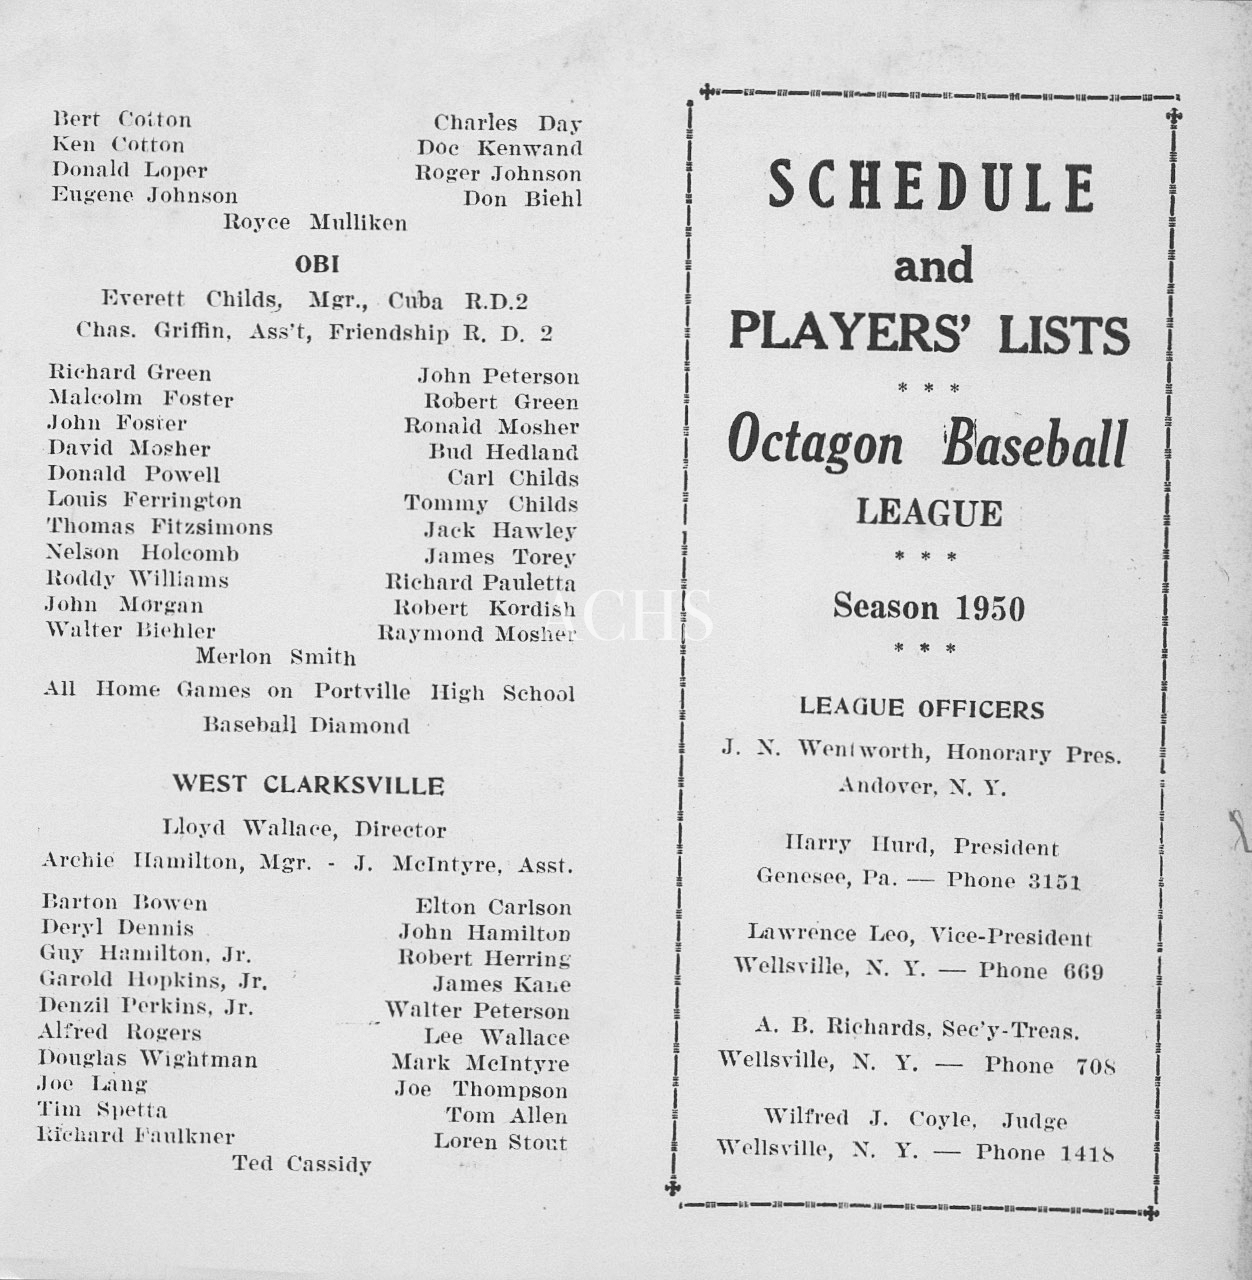 Octagon Baseball League, Allegany County, N.Y. 1950 part 1